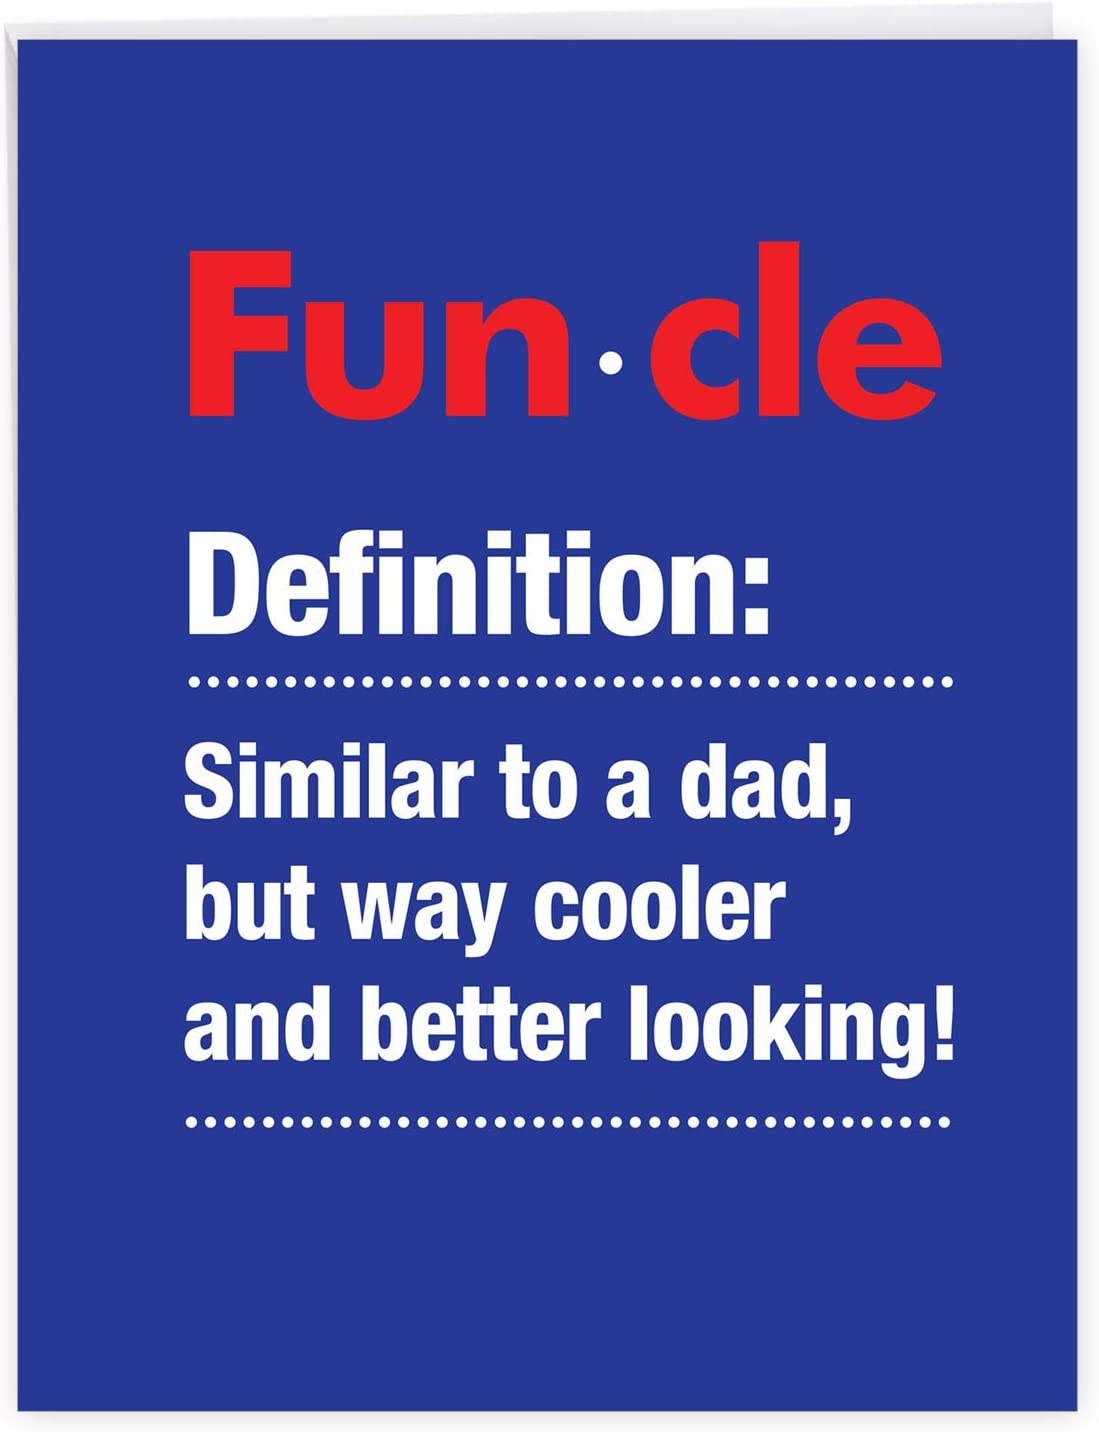 Amazon Com Nobleworks Funcle Funny Happy Birthday Card For Uncle Bday Notecard With Envelope Big 8 5 X 11 Inch J7232bdg Us Office Products